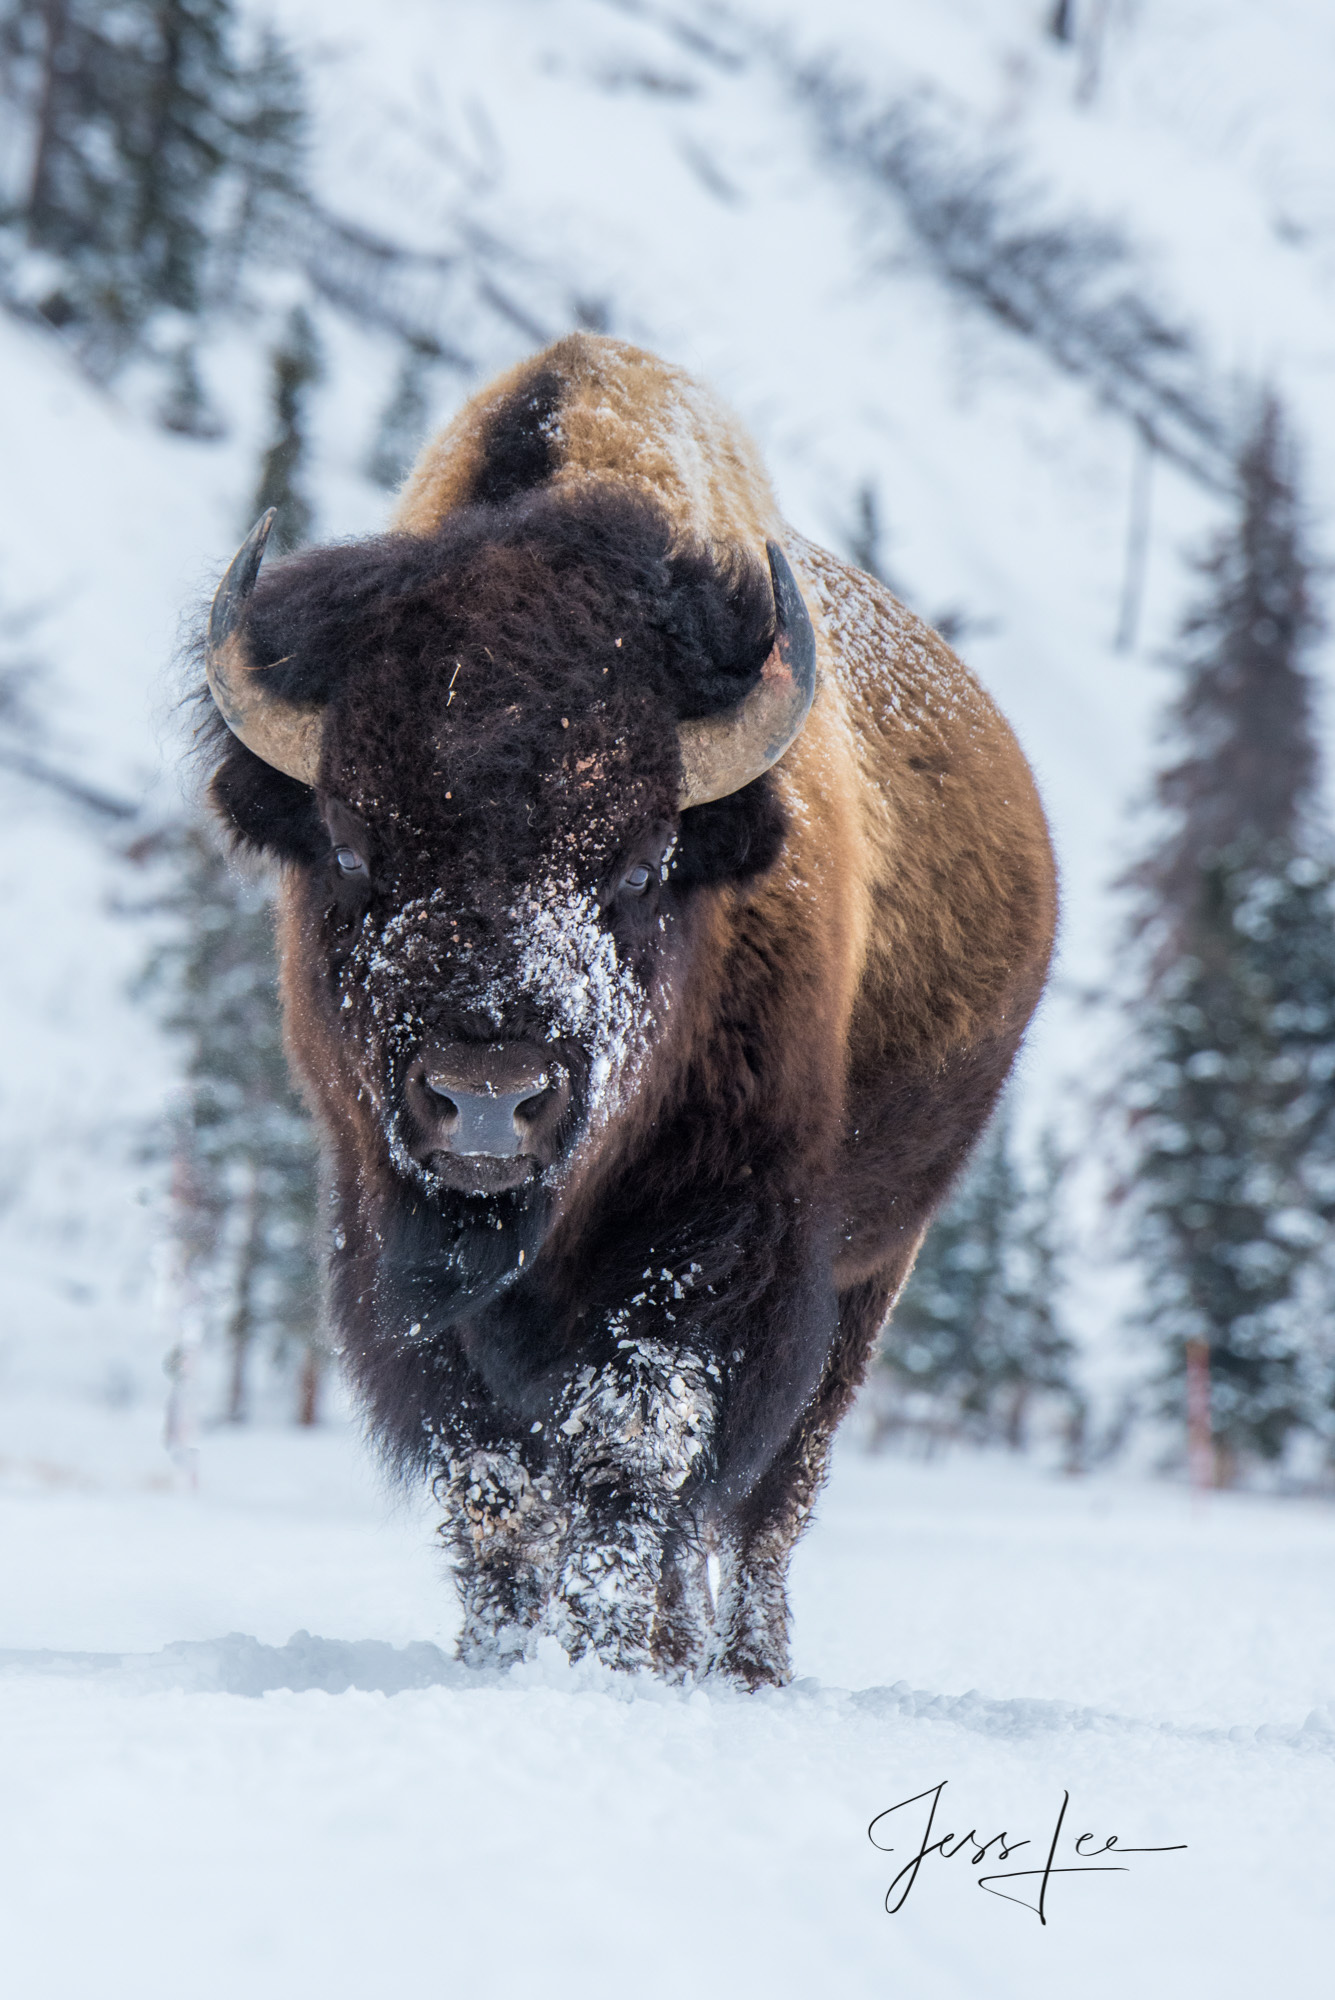 Yellowstone Bison or American Buffalo in Winter. A Limited Edition of 800 Prints.  Yes I did think he was going to crush me....